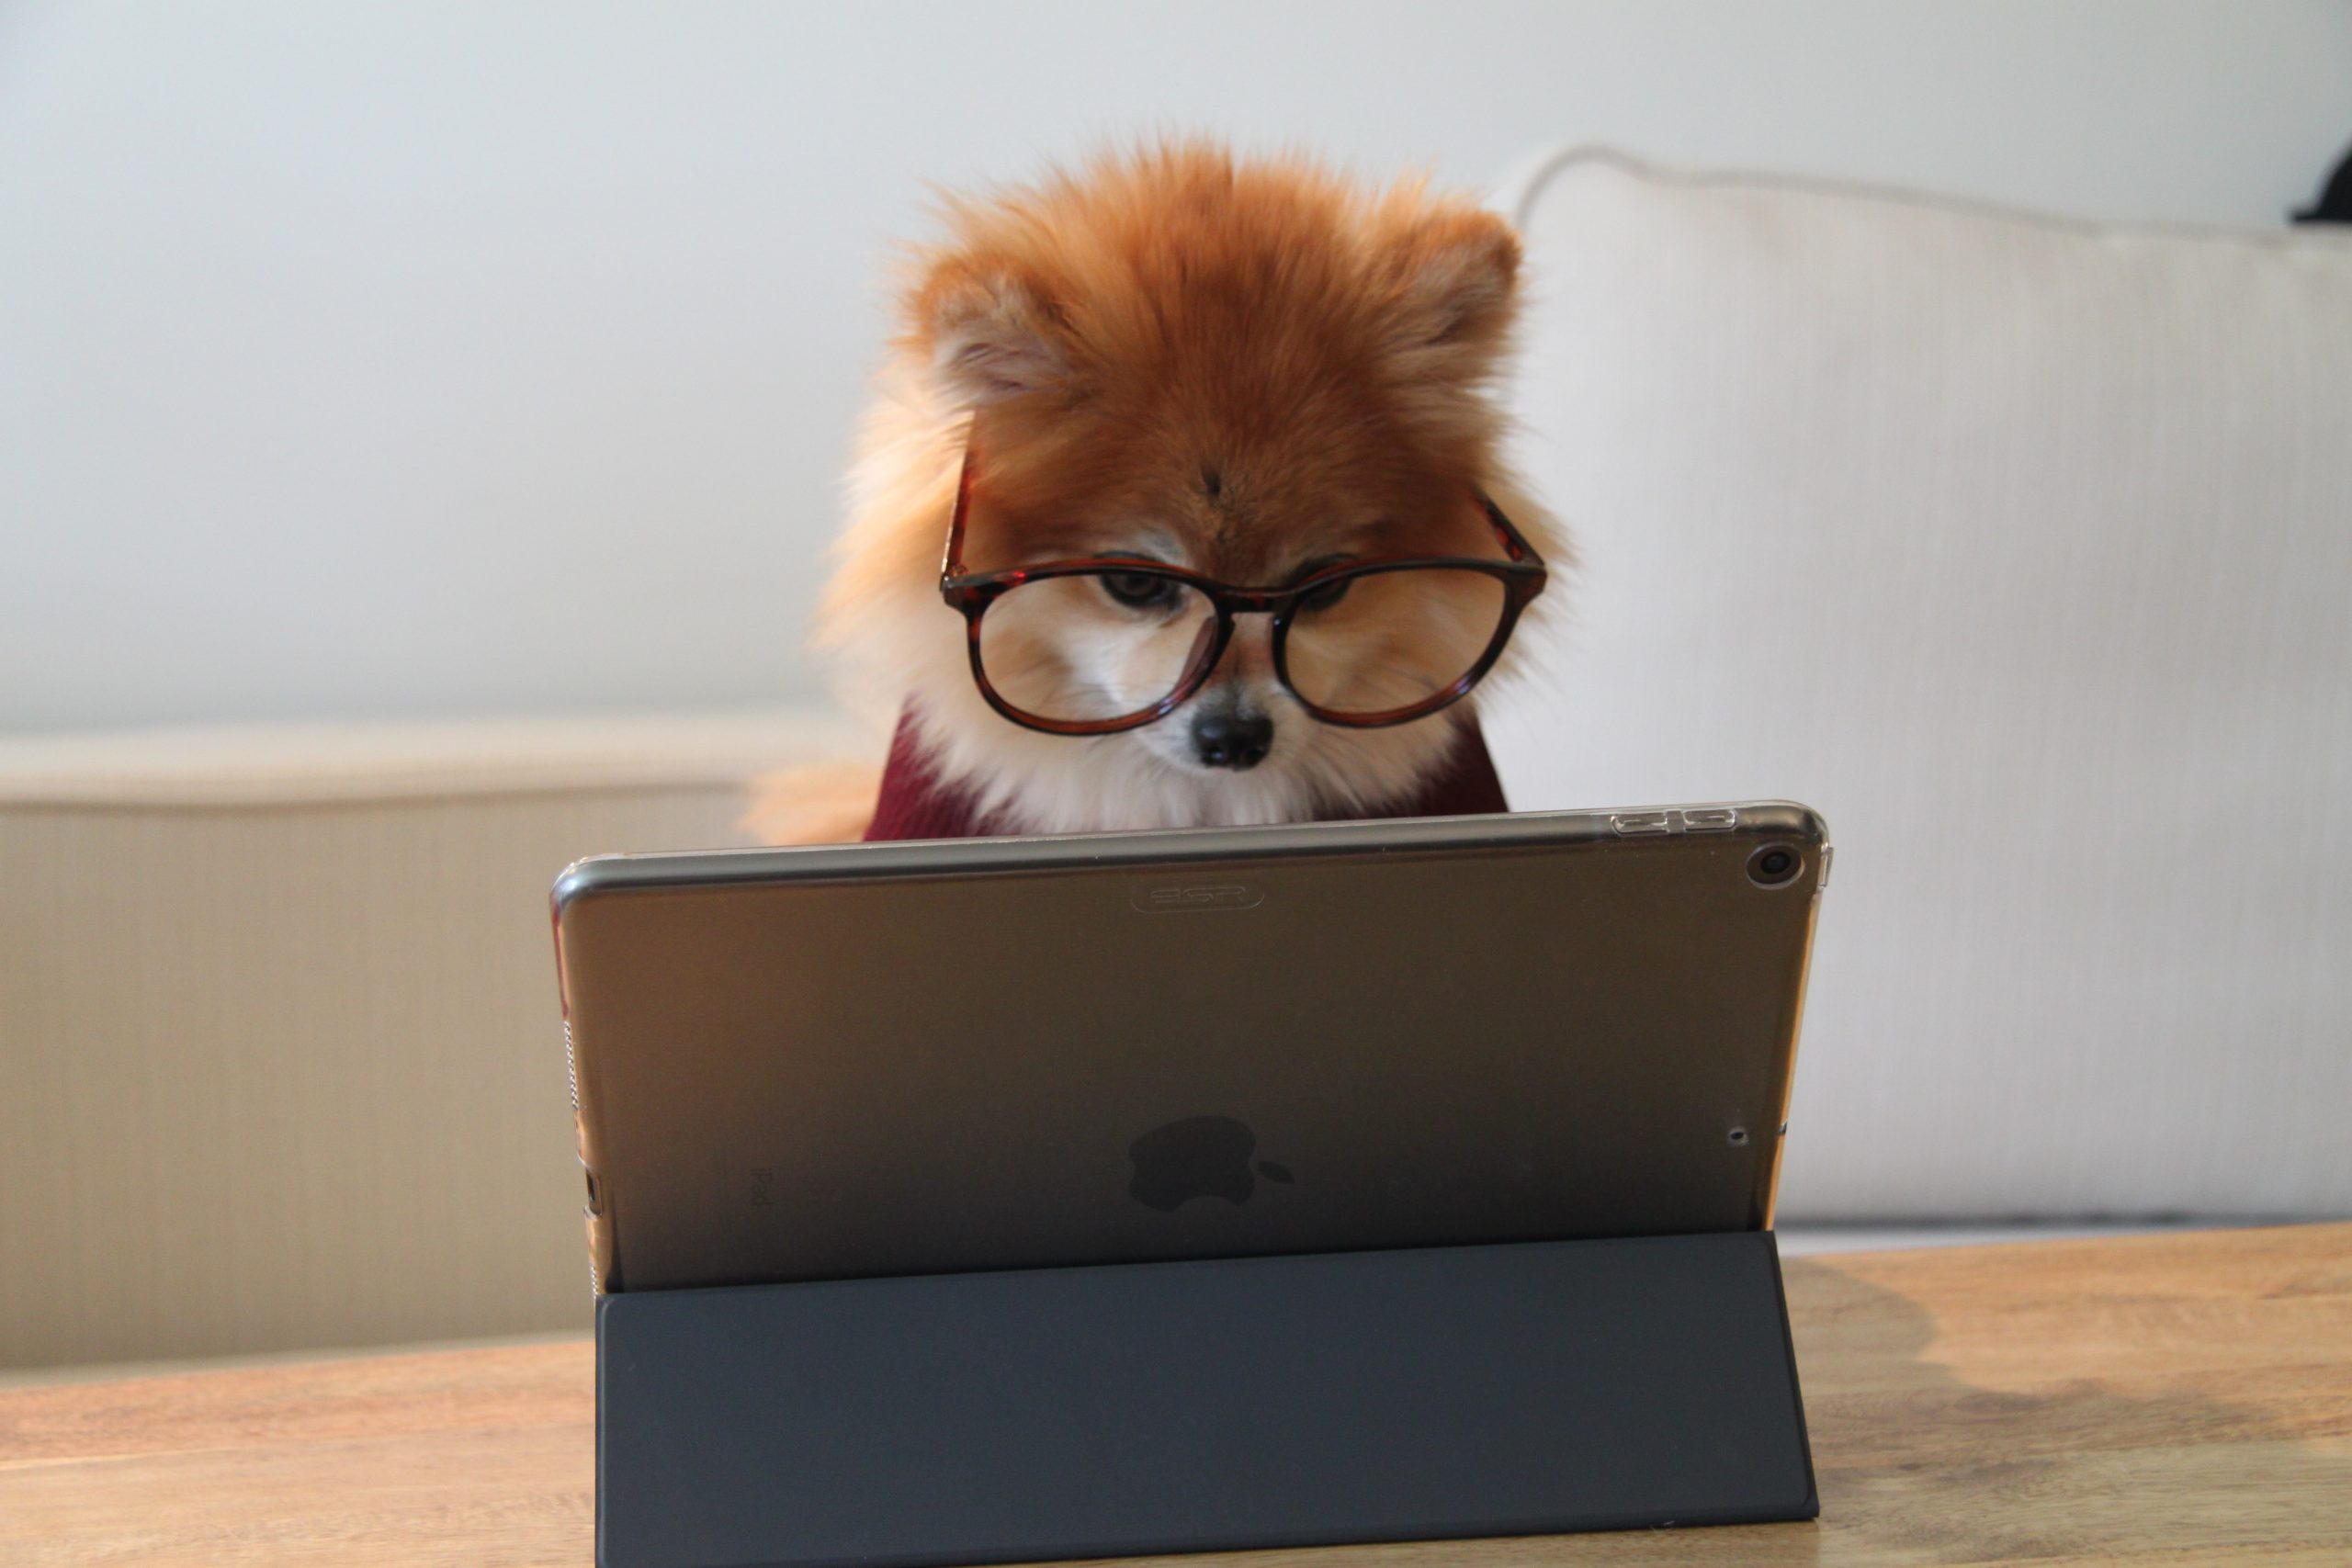 Pomeranian Working on iPad